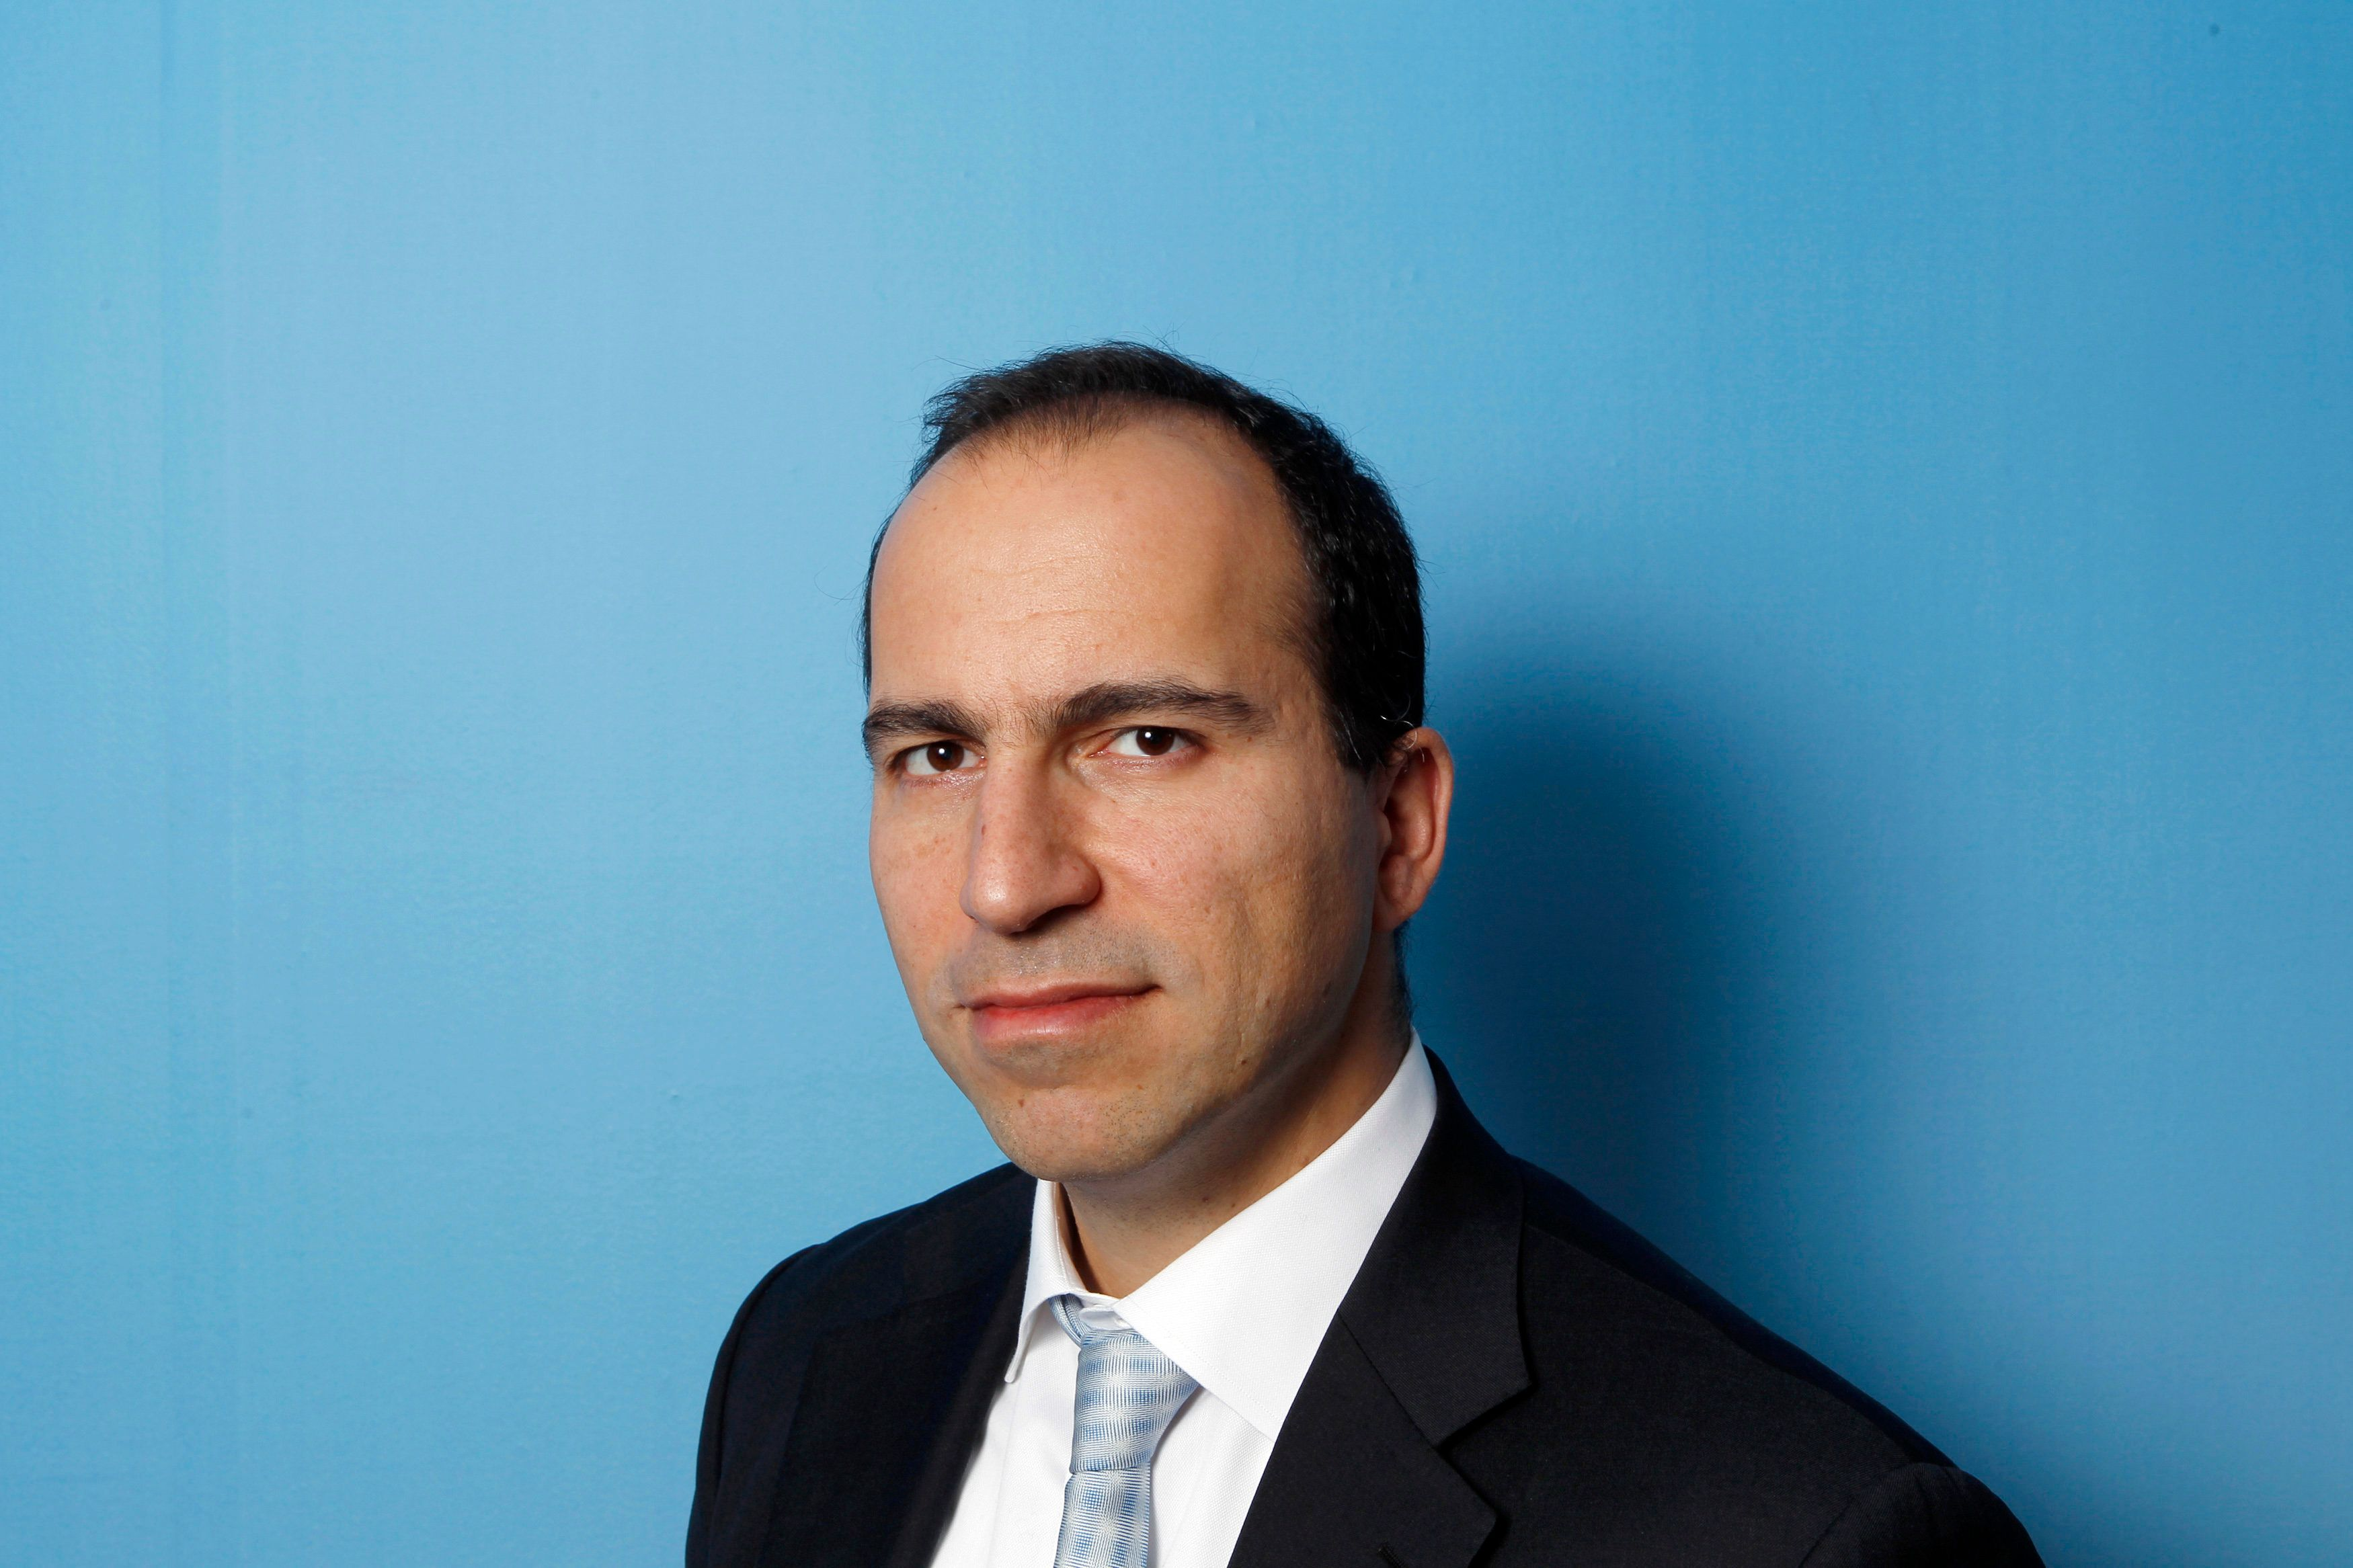 Expedia CEO Dara Khosrowshahi poses for a portrait during the 2010 Reuters Travel and Leisure Summit in New York February 22, 2010.  REUTERS/Lucas Jackson (UNITED STATES - Tags: BUSINESS TRAVEL)